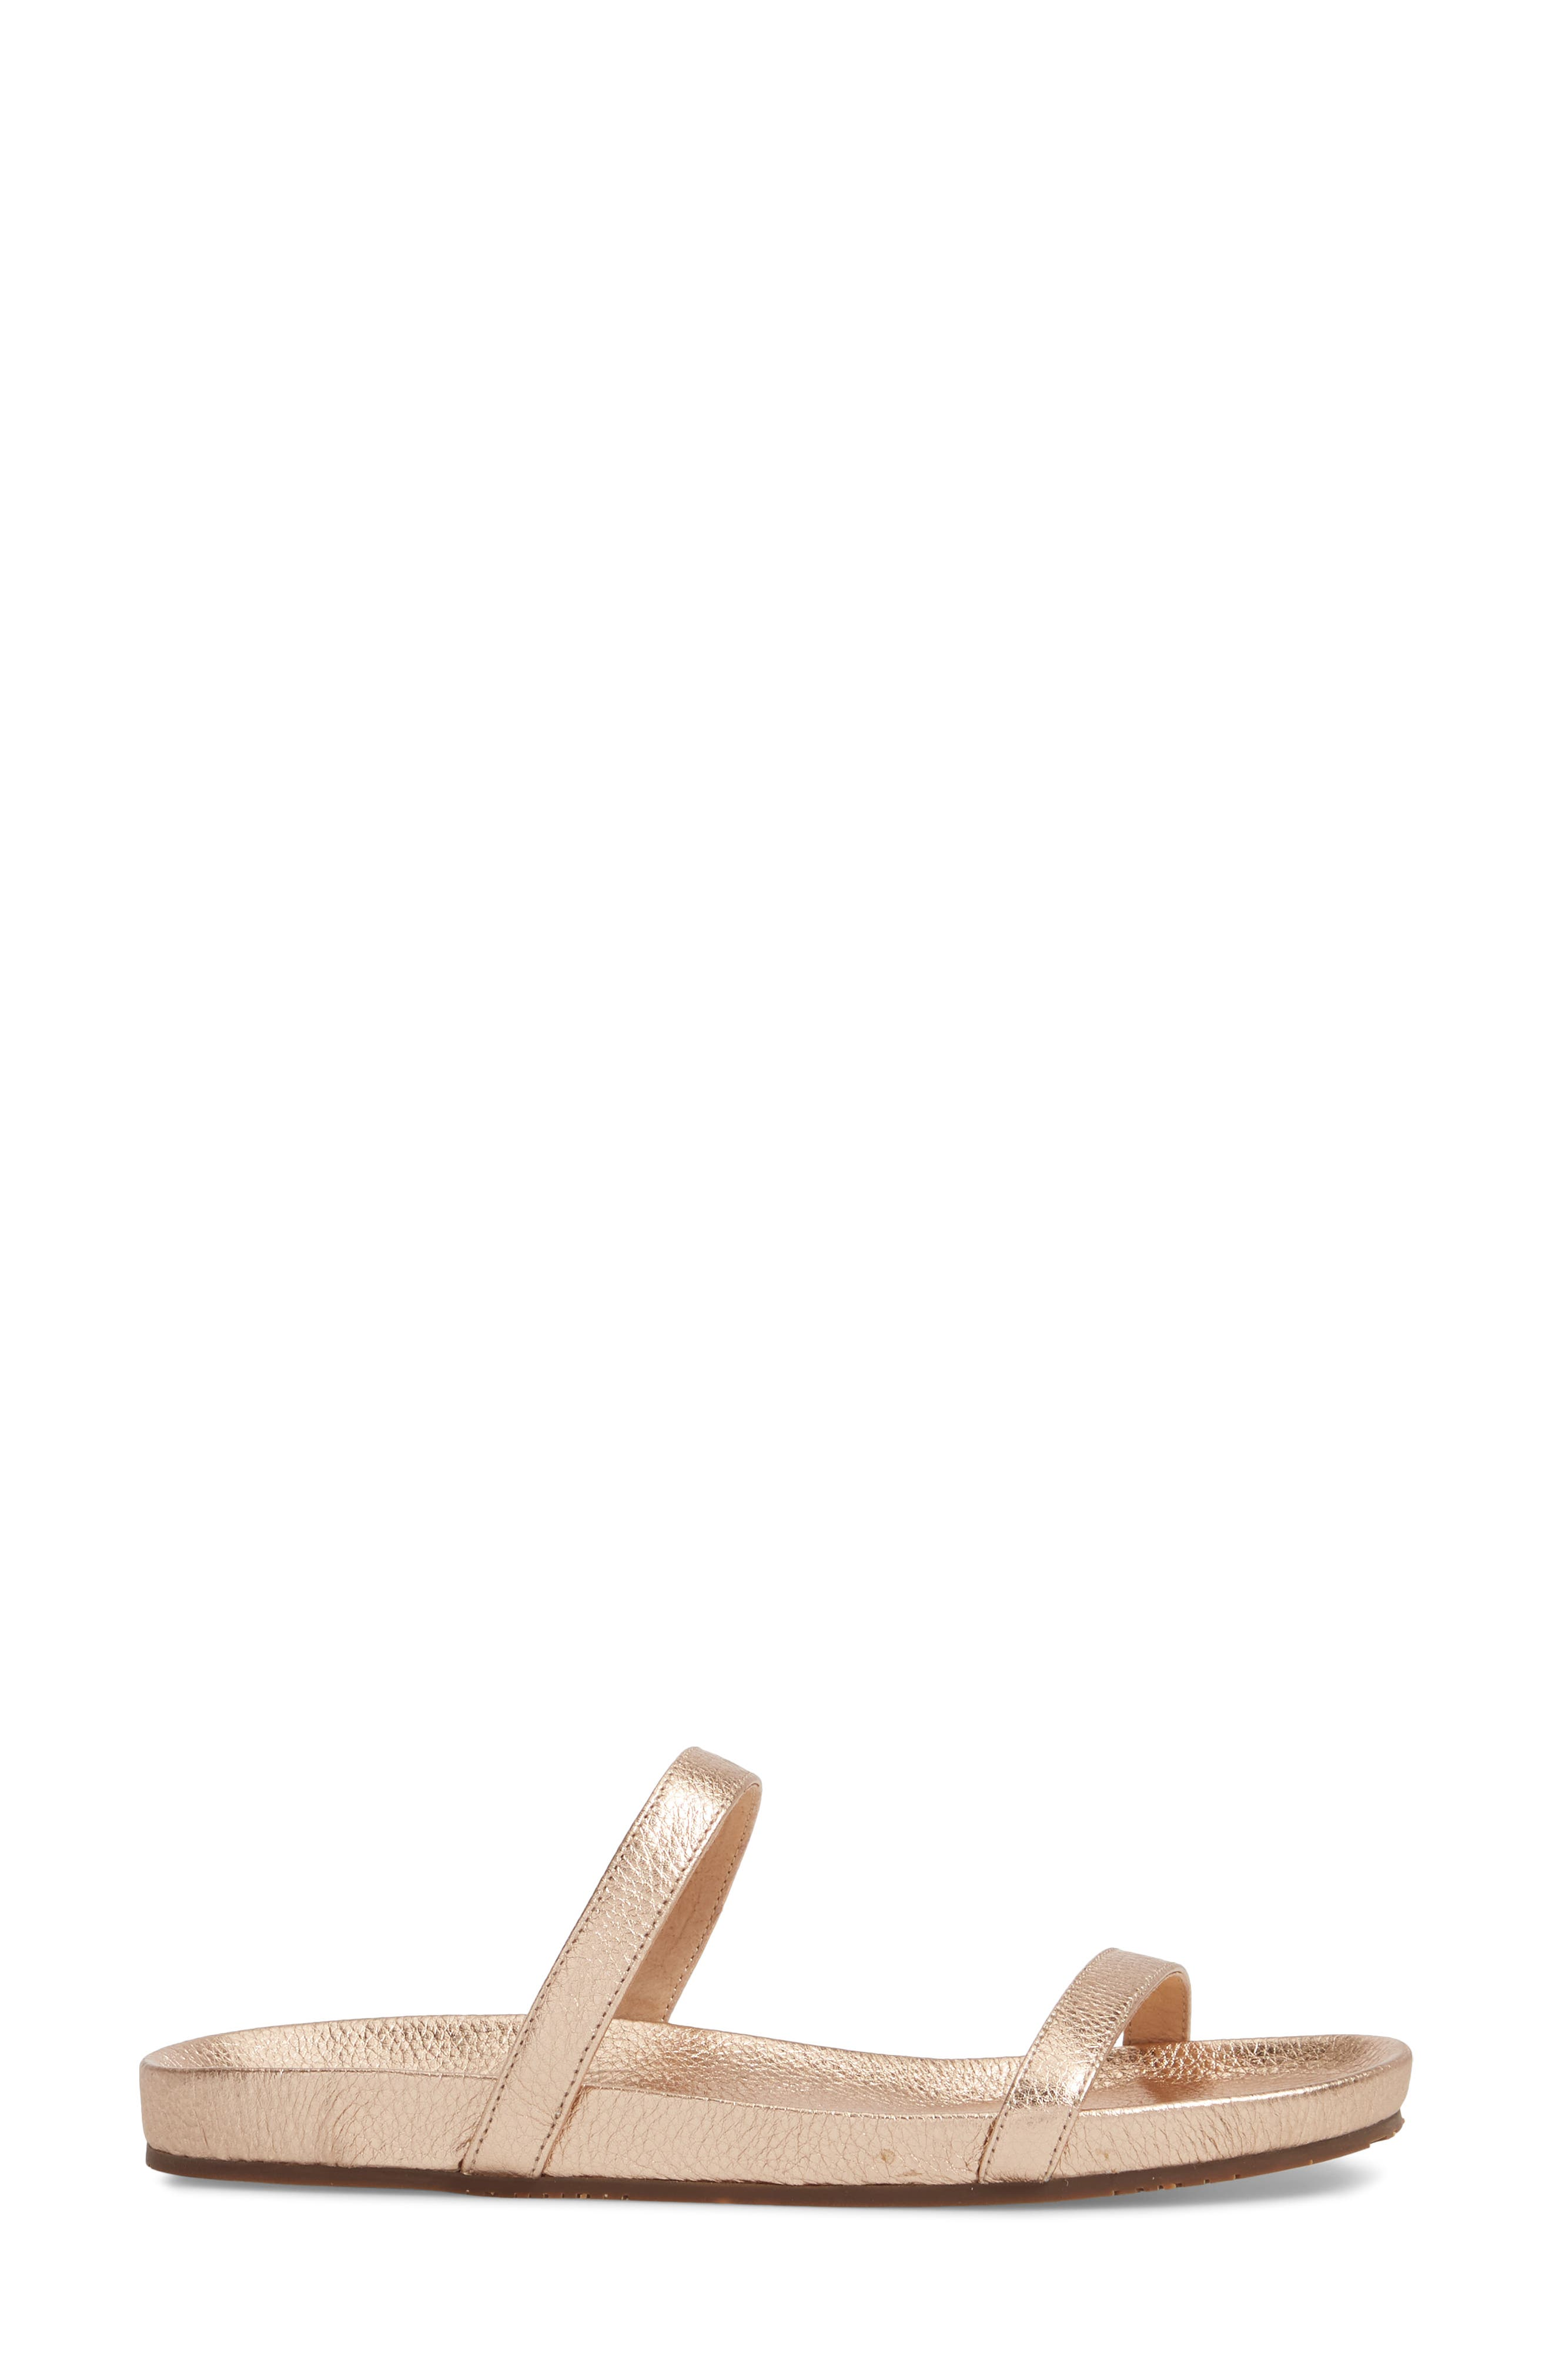 Yale Two-Strap Sandal,                             Alternate thumbnail 3, color,                             Rose Gold Leather